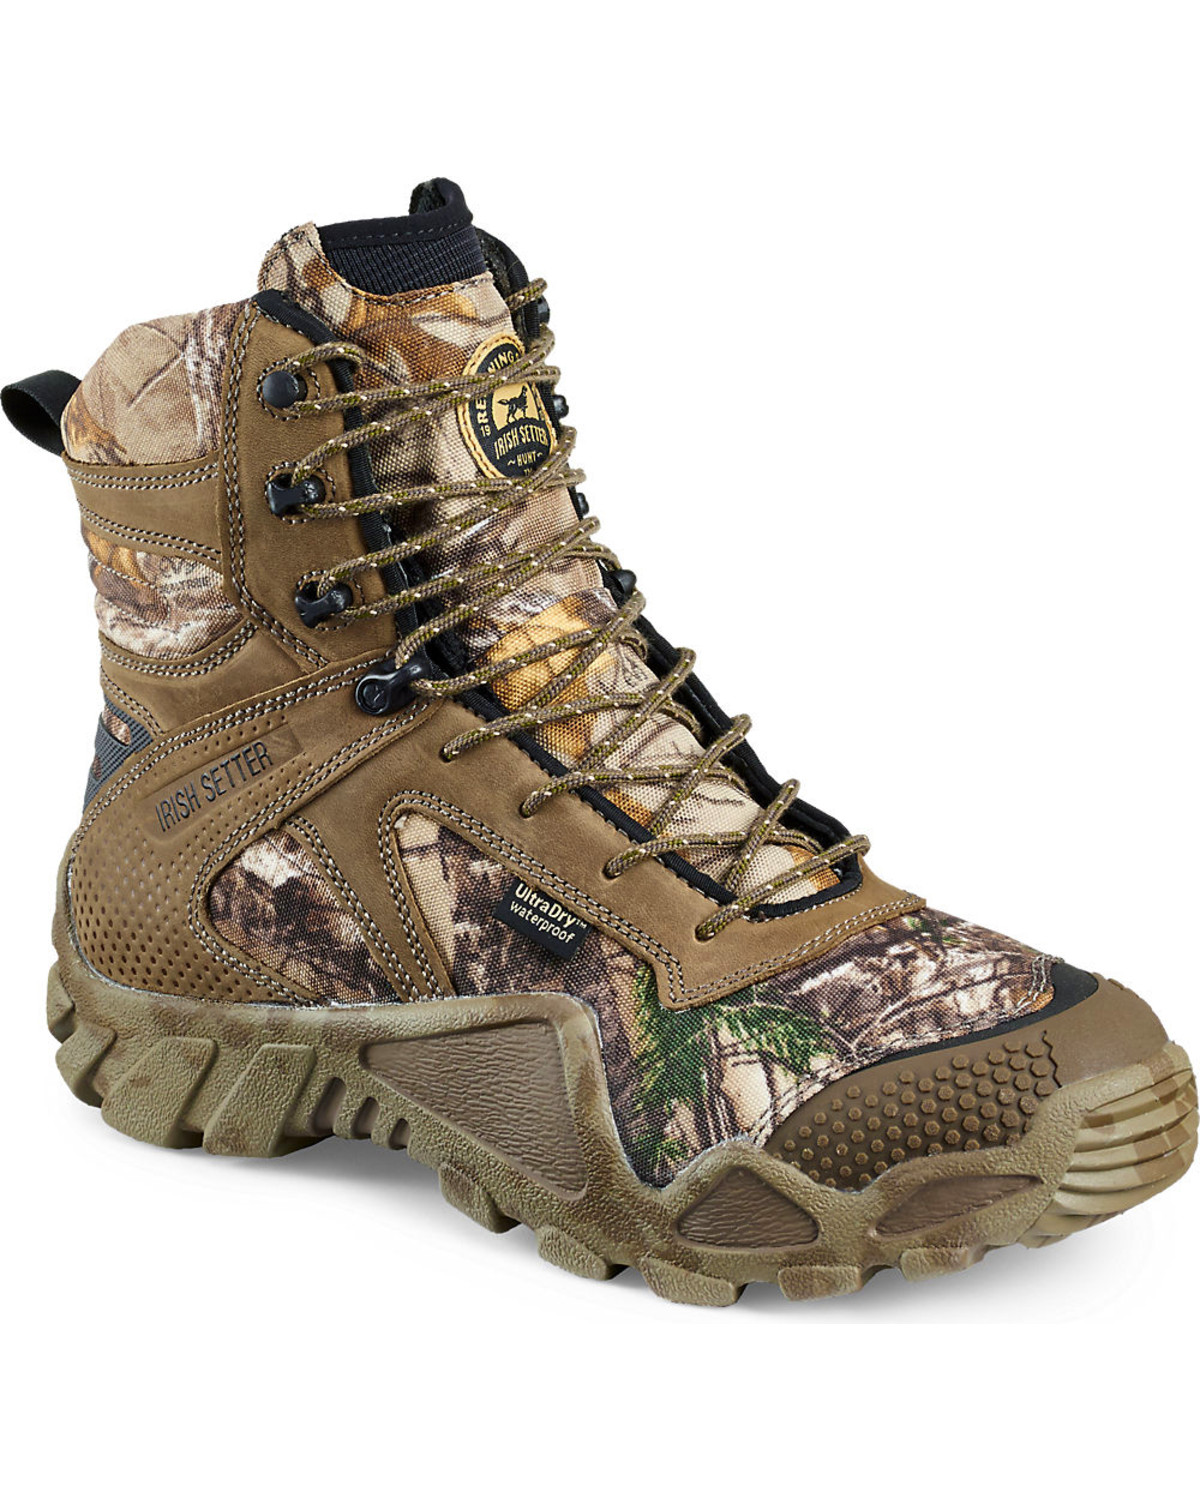 Irish Setter by Red Wing Shoes Men's Realtree Xtra Vaprtrek Insulated Waterproof 8